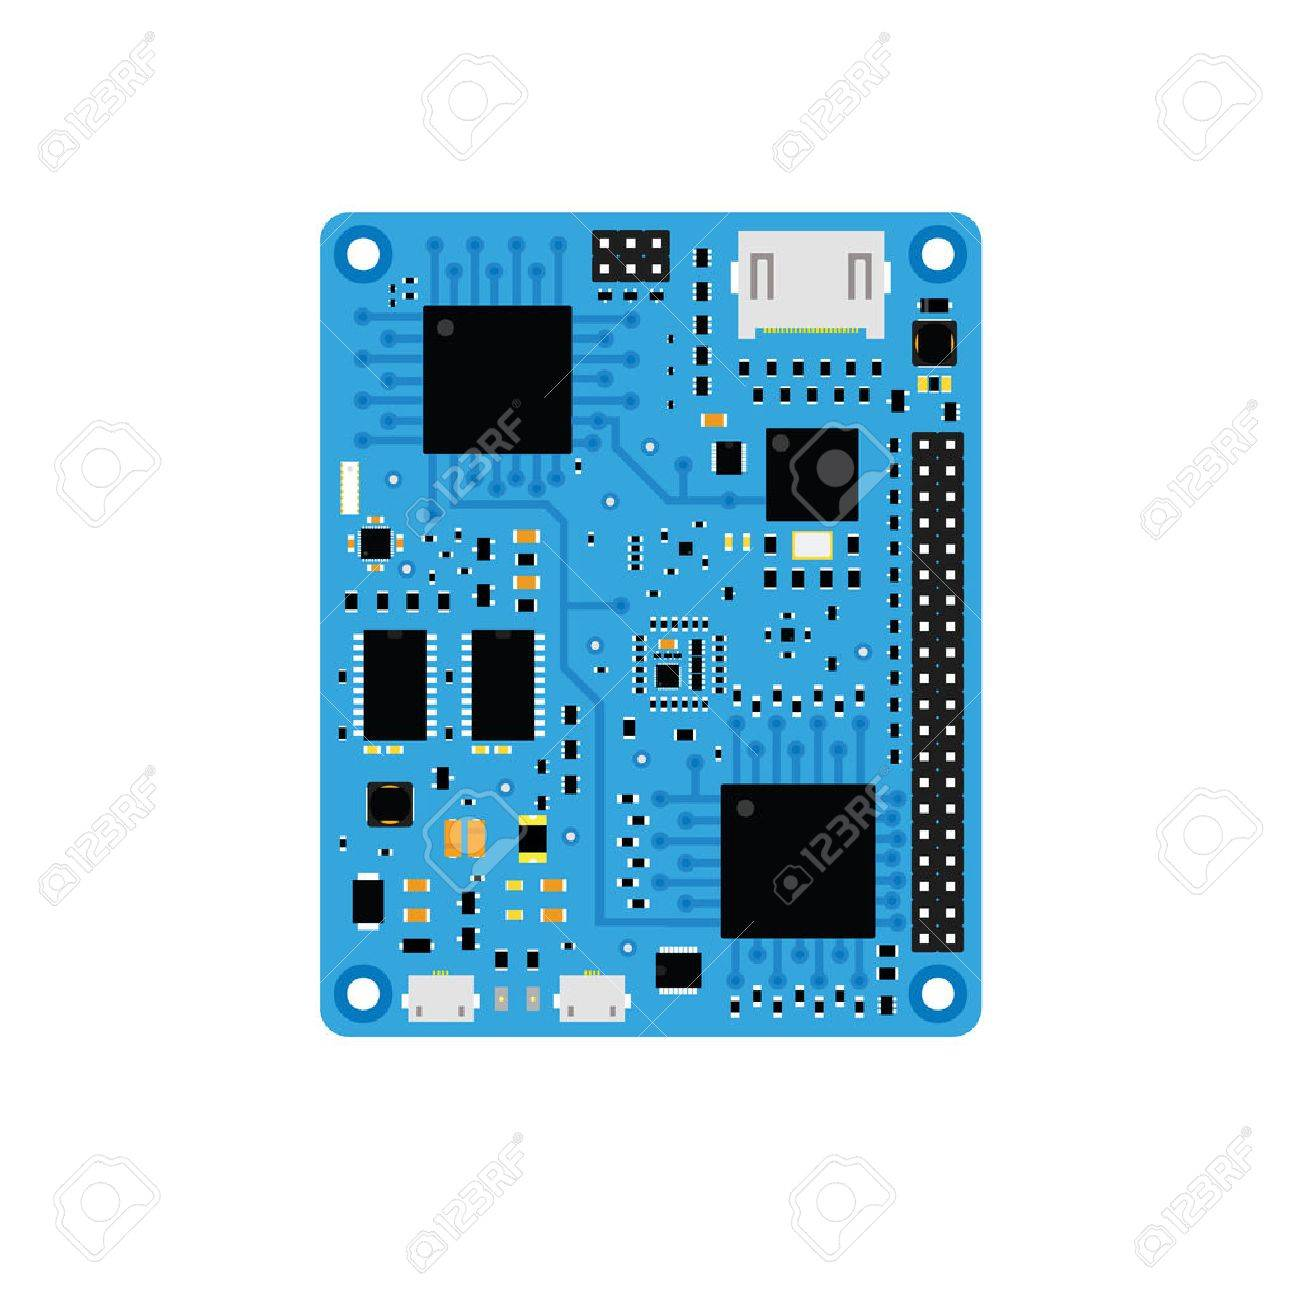 Diy Electronic Blue High End Board With A Microcontroller Royalty Build Circuit Stock Vector 63071547